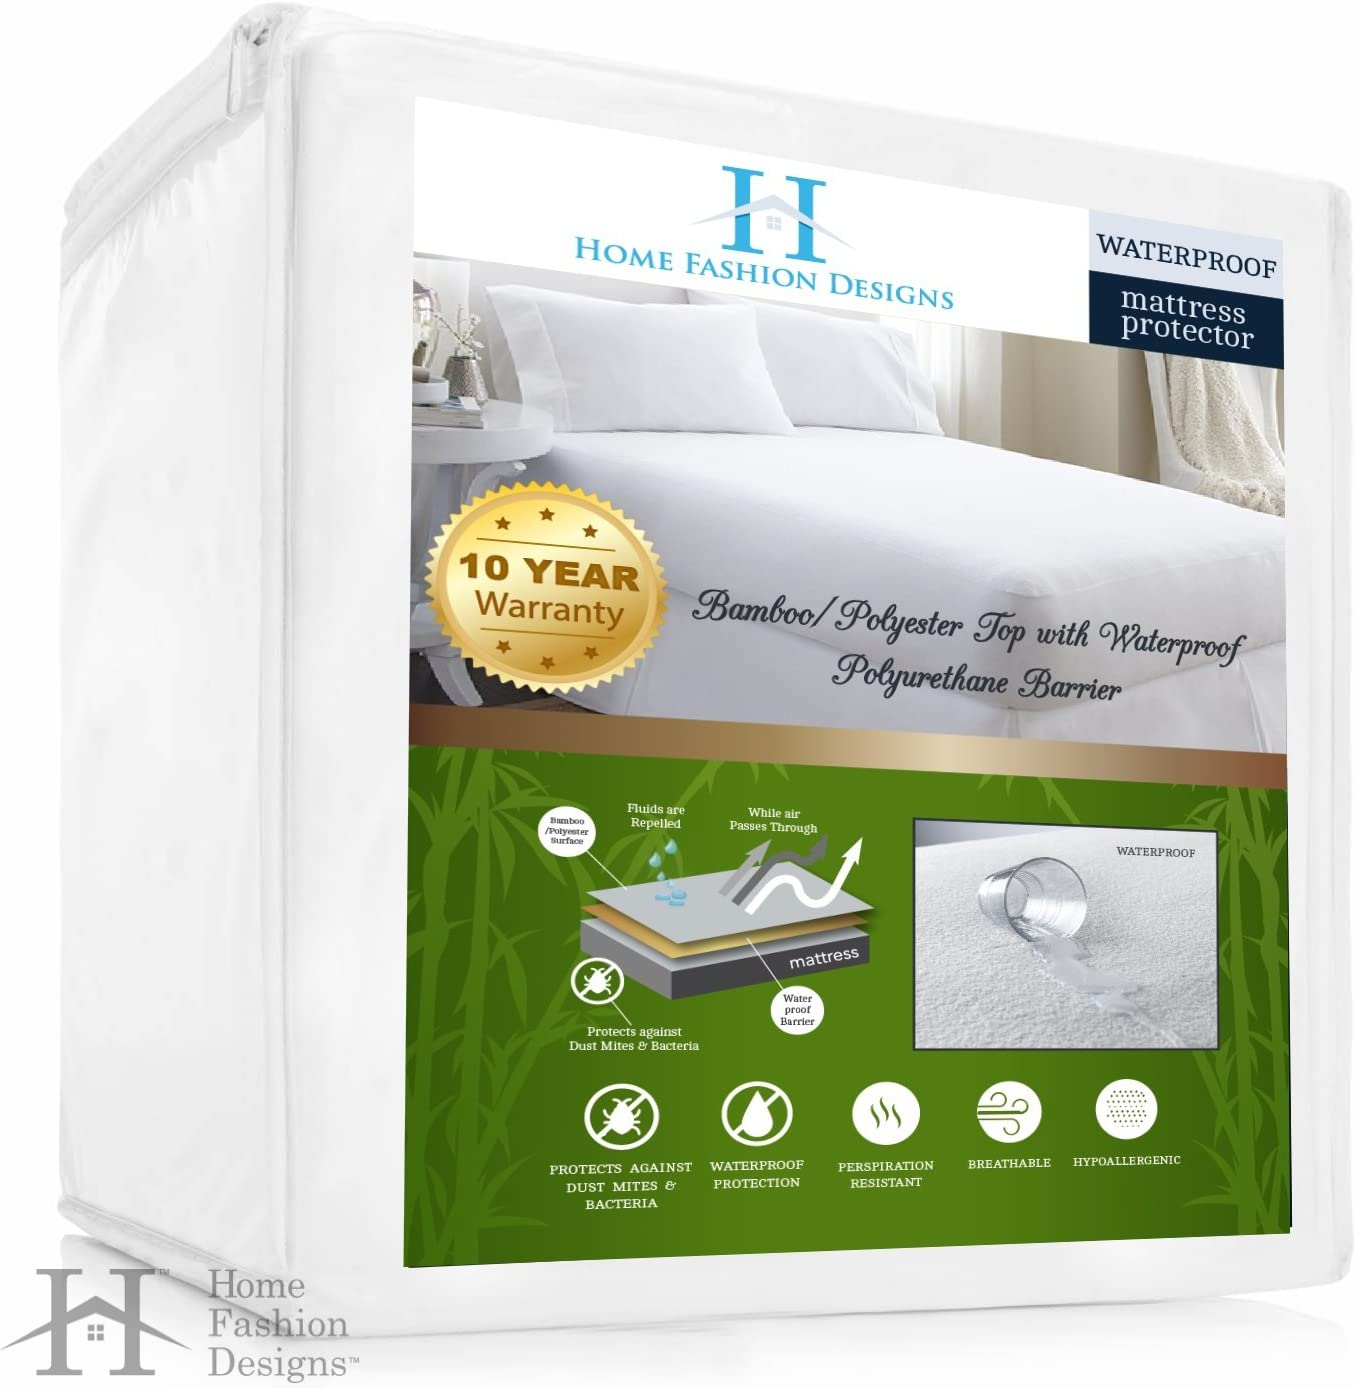 Home Fashion Designs Bamboo Hypoallergenic Waterproof Mattress Protector (Queen)